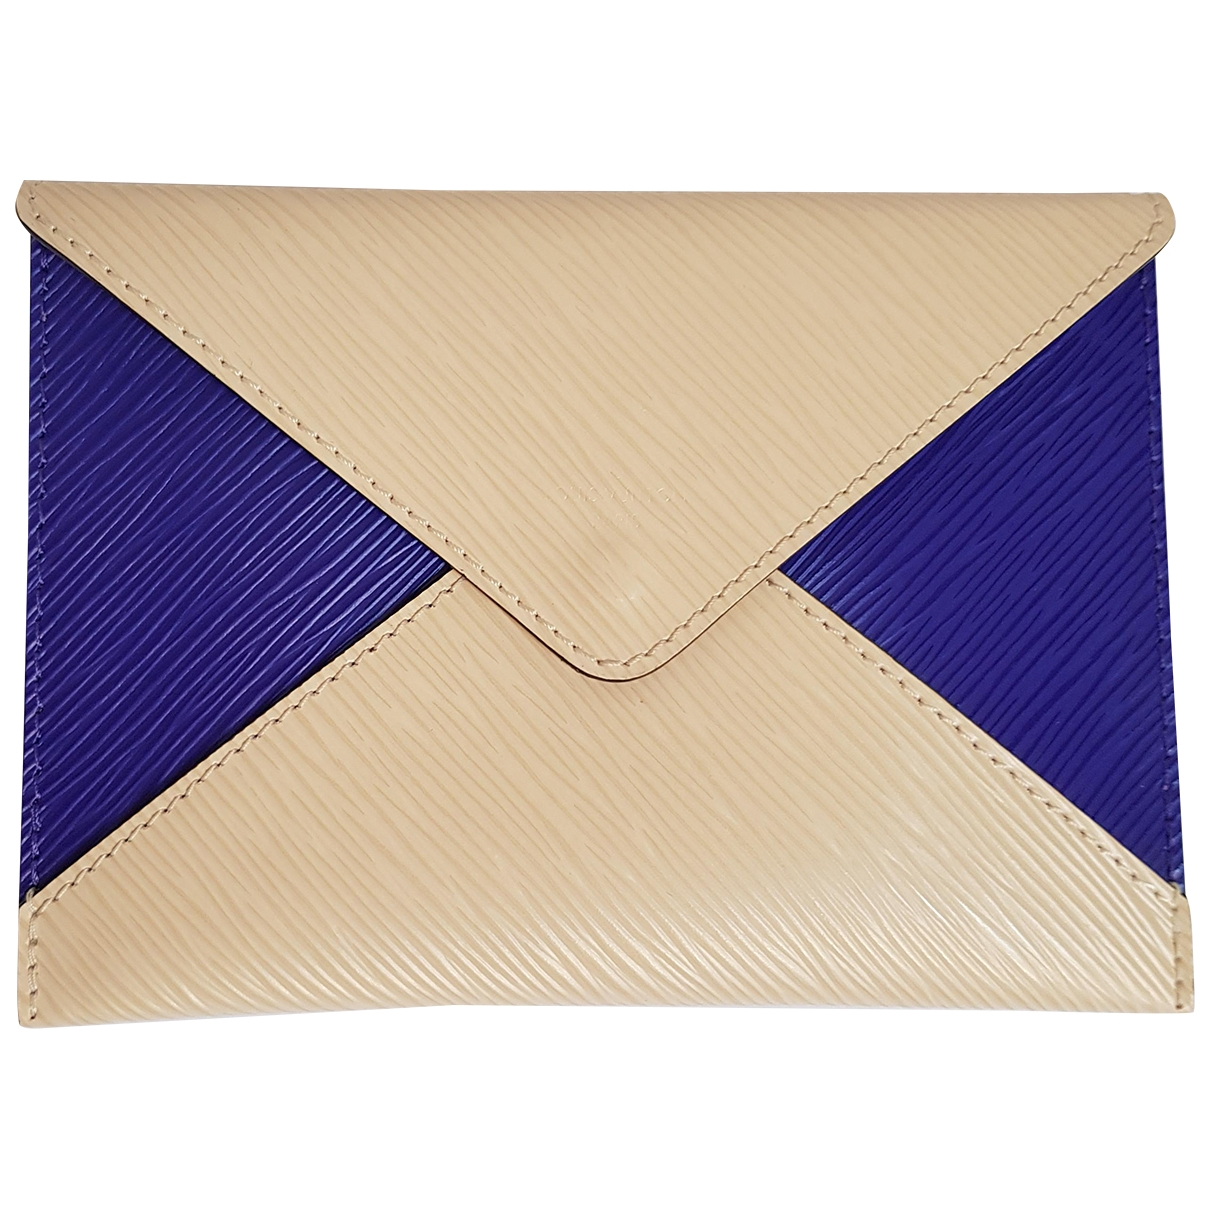 Louis Vuitton Kirigami Blue Leather Purses, wallet & cases for Women \N